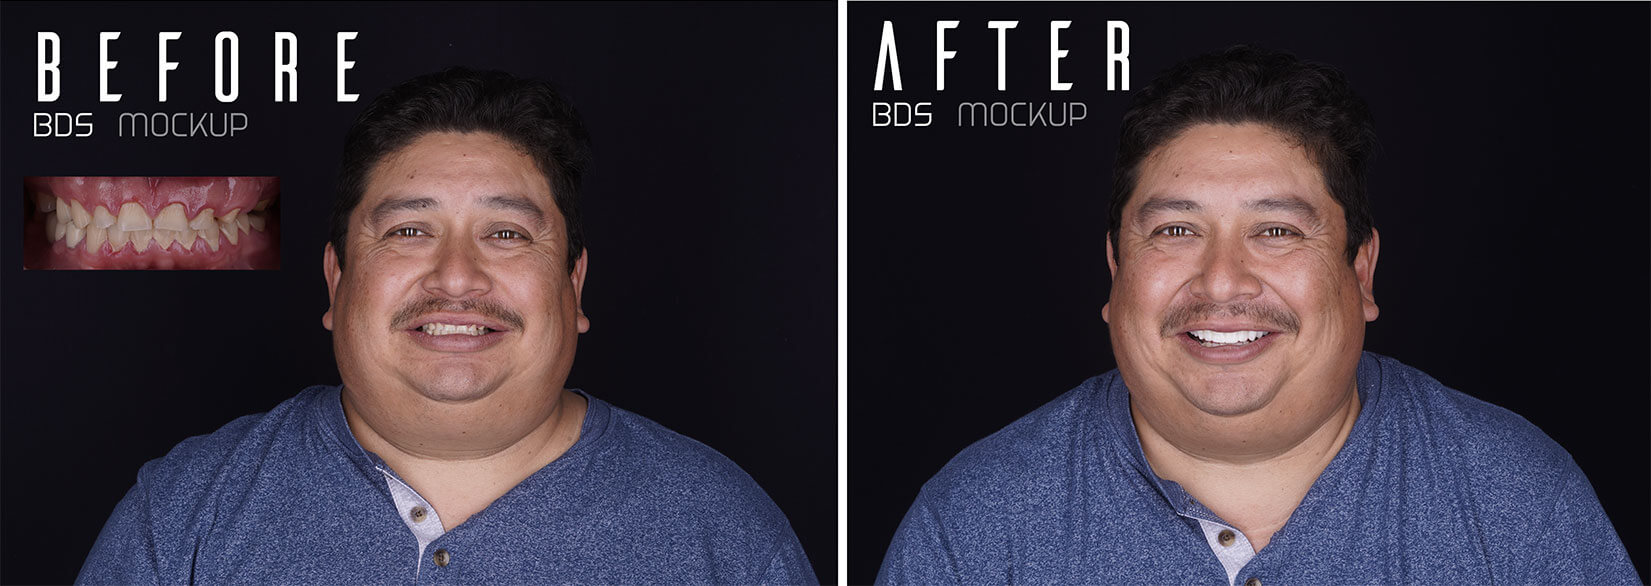 Before After BDS Mockup